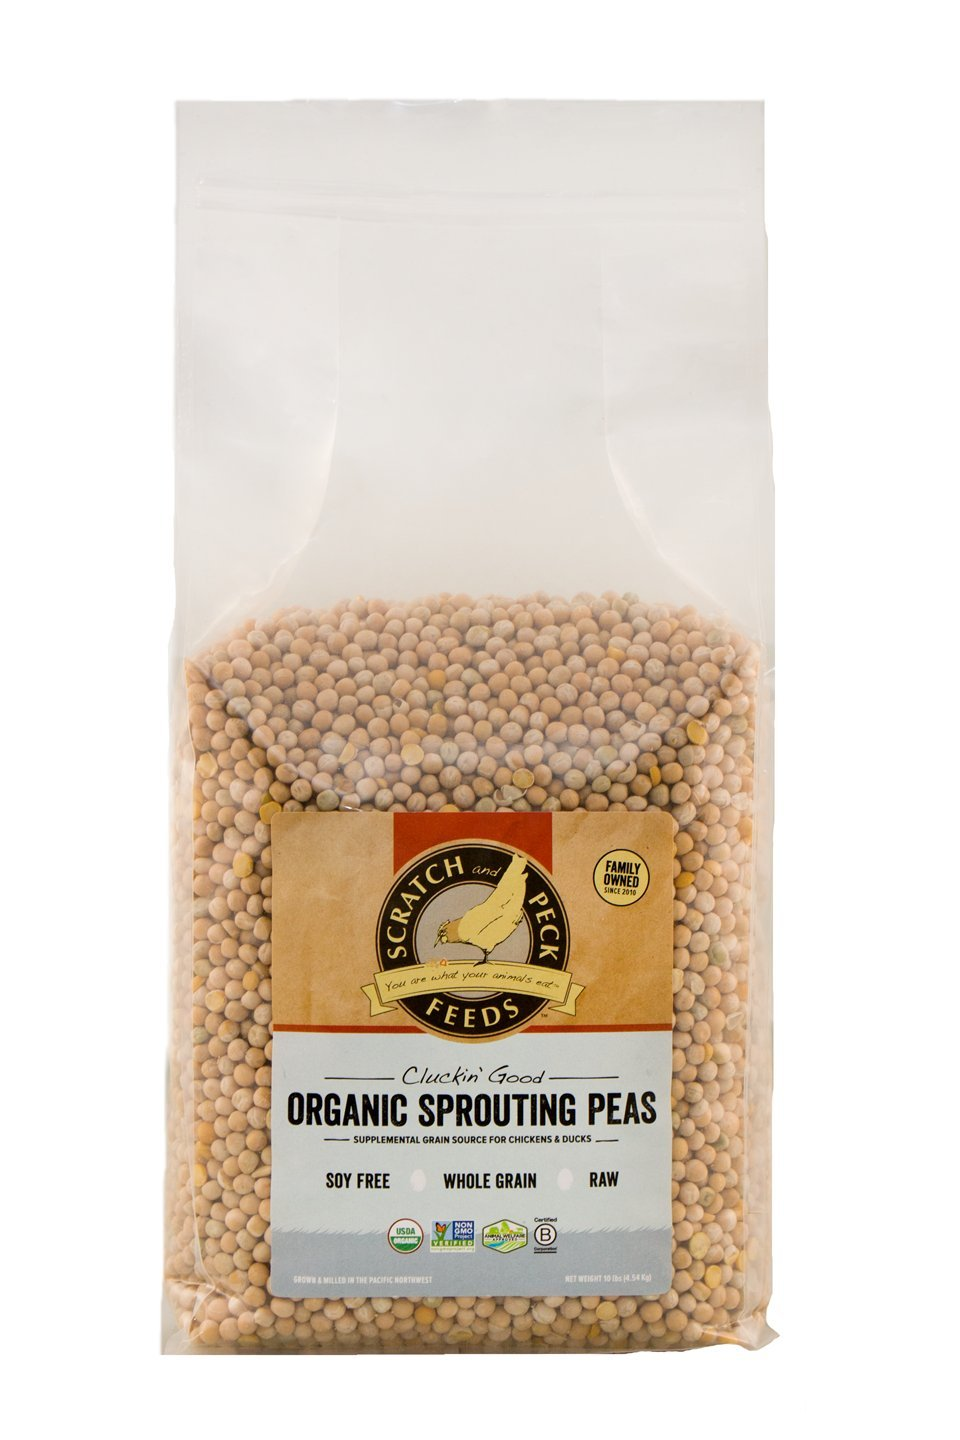 Scratch and Peck Feeds - Cluckin' Good Organic Sprouting Peas - Supplemental Grain Source - Soy Free, Whole Grain, Raw - 10-lbs